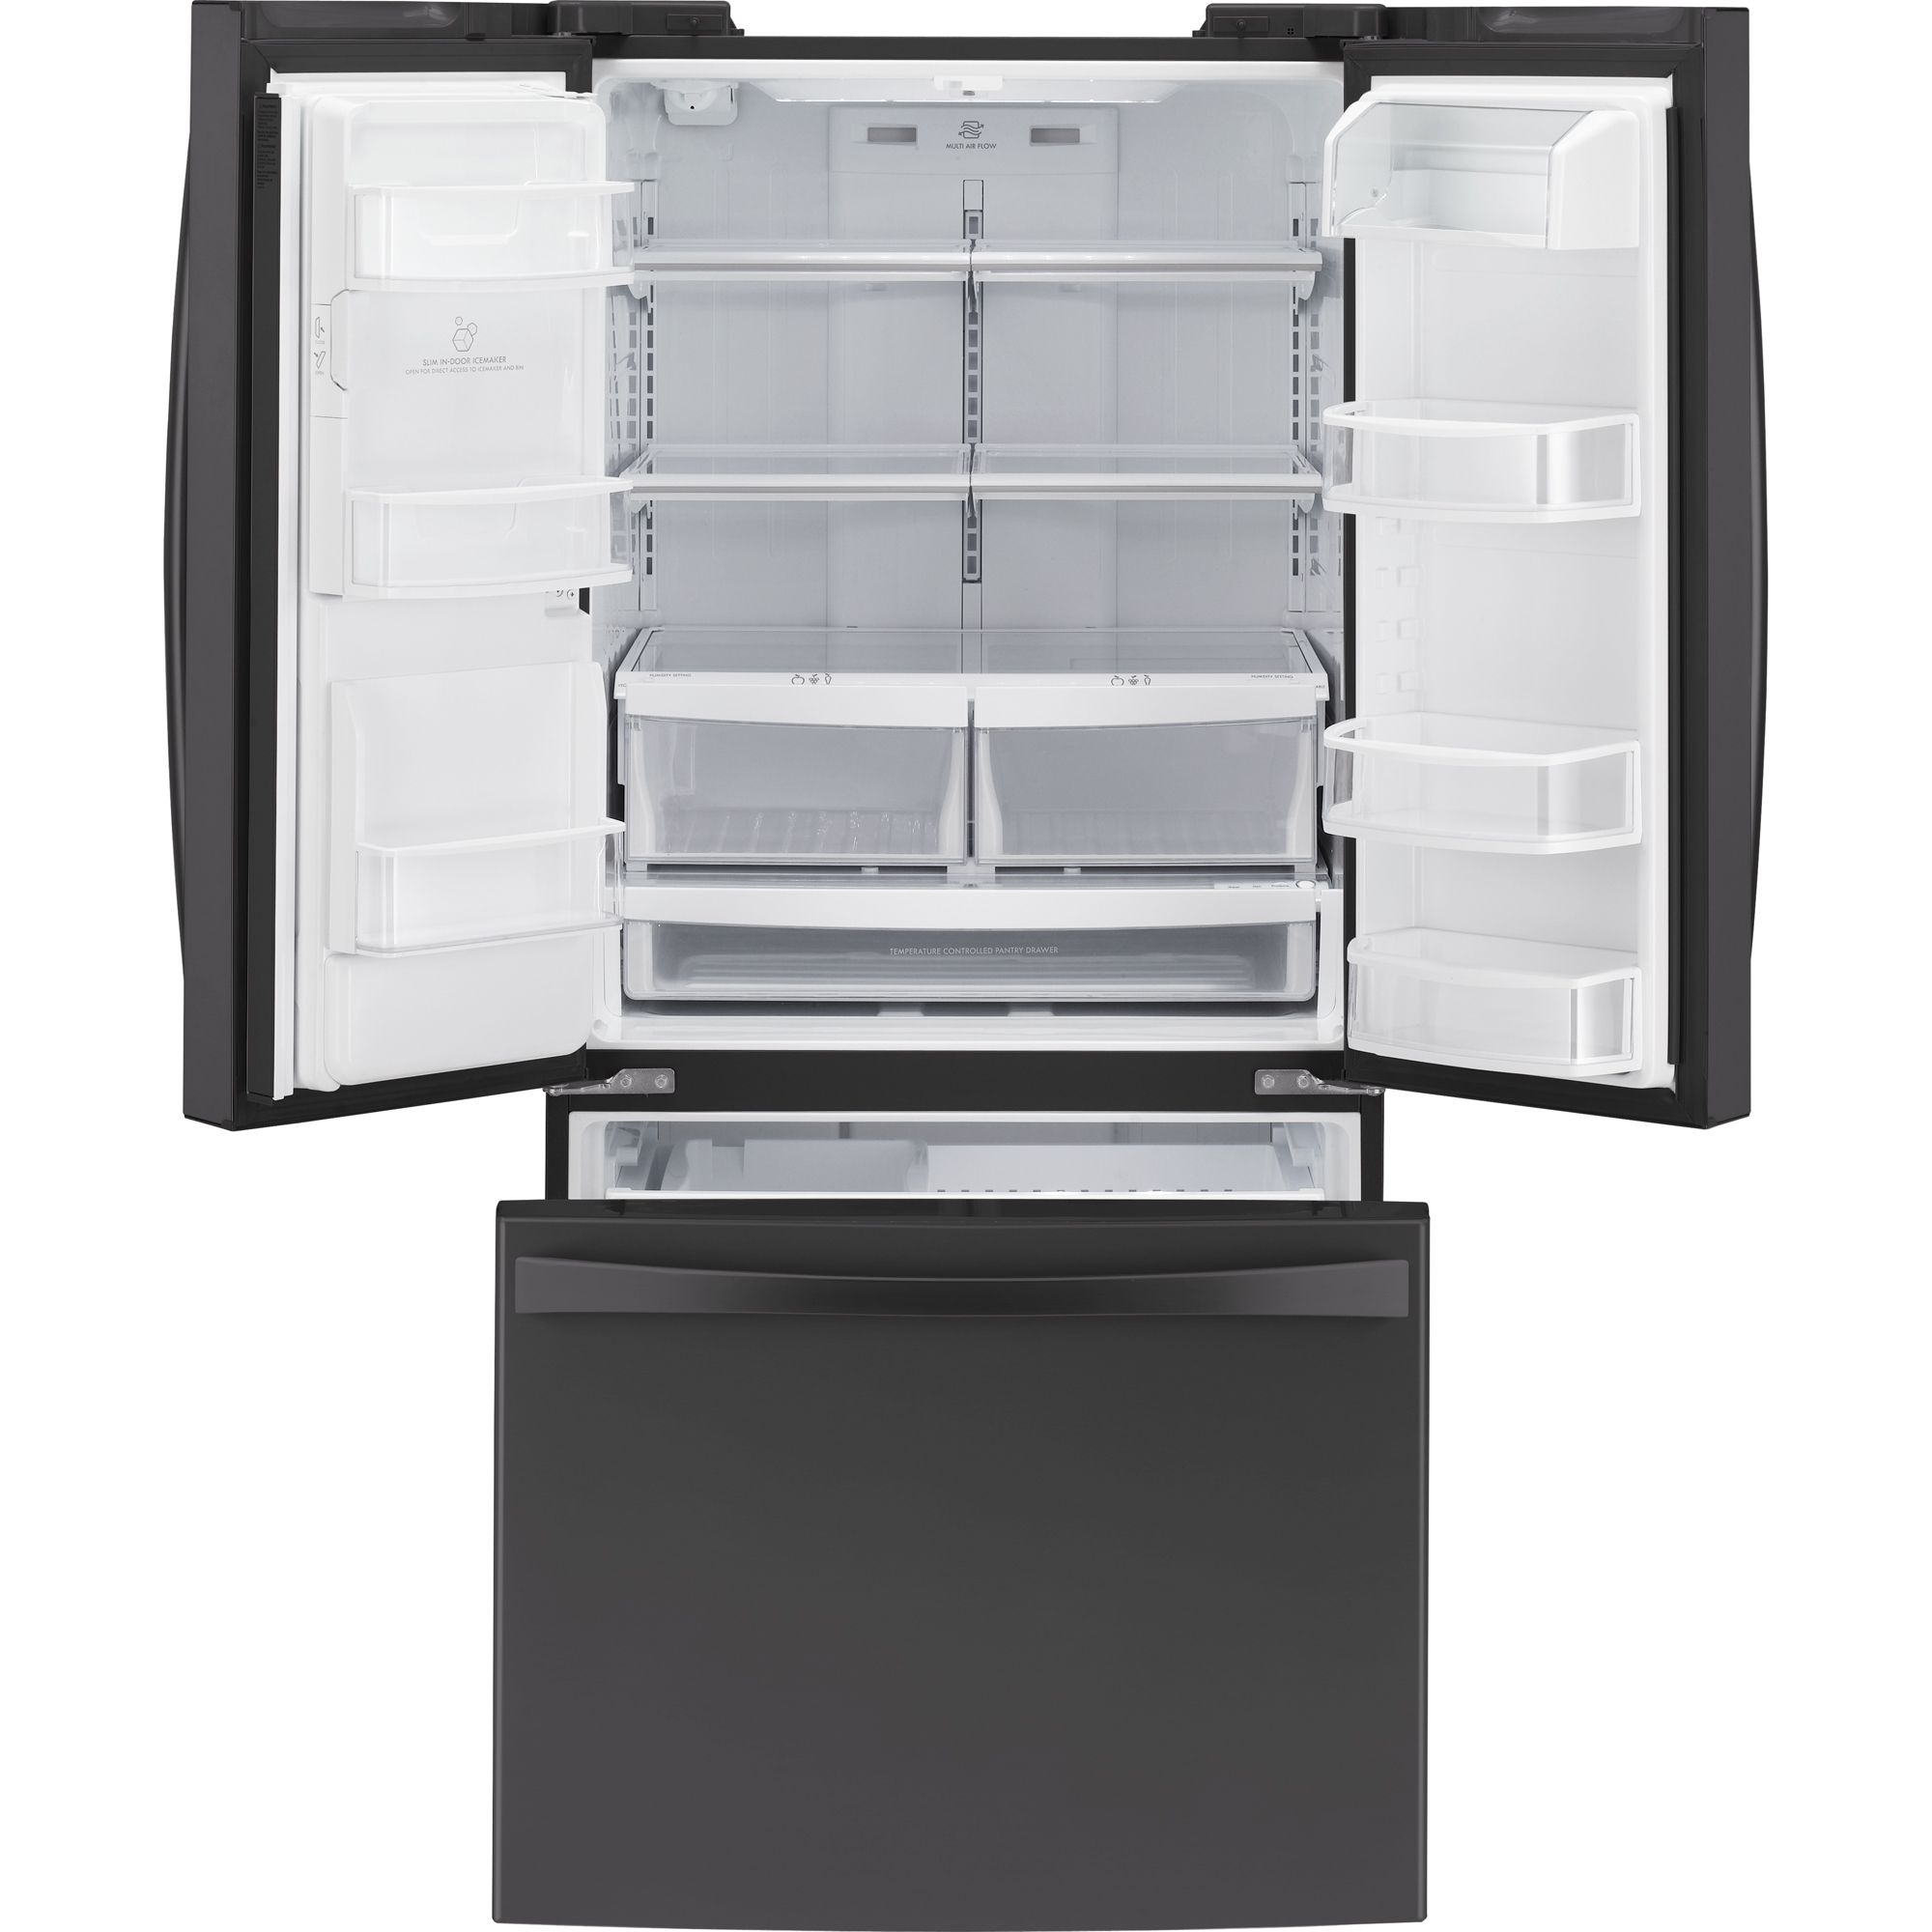 Kenmore Elite 25.0 cu. ft. French-Door Bottom-Freezer Refrigerator - Black